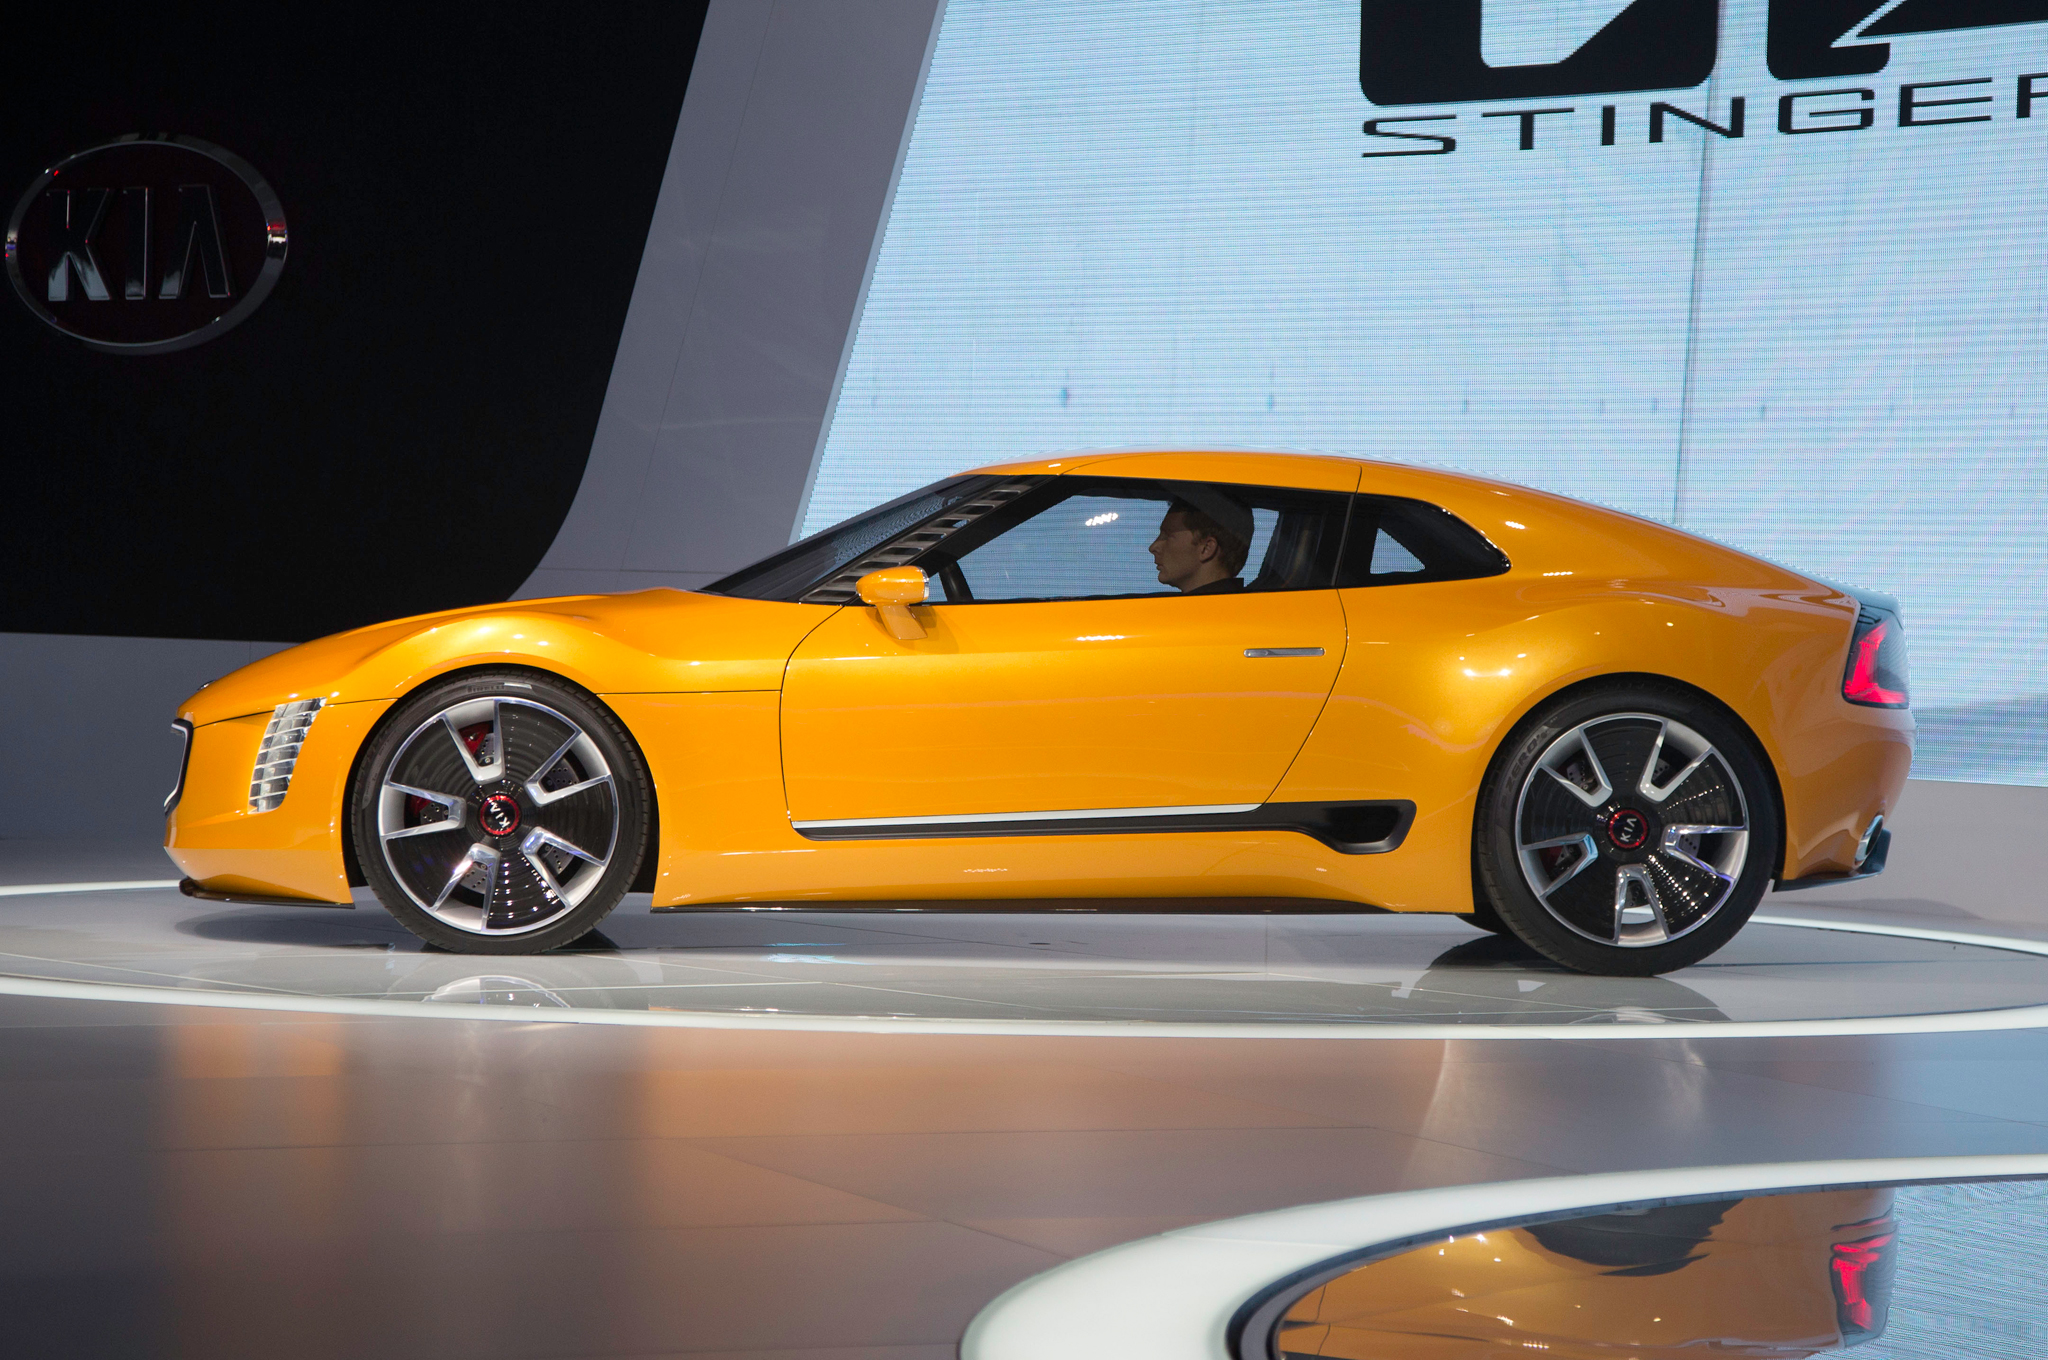 2014 Kia GT4 Stinger Concept  Backgrounds on Wallpapers Vista